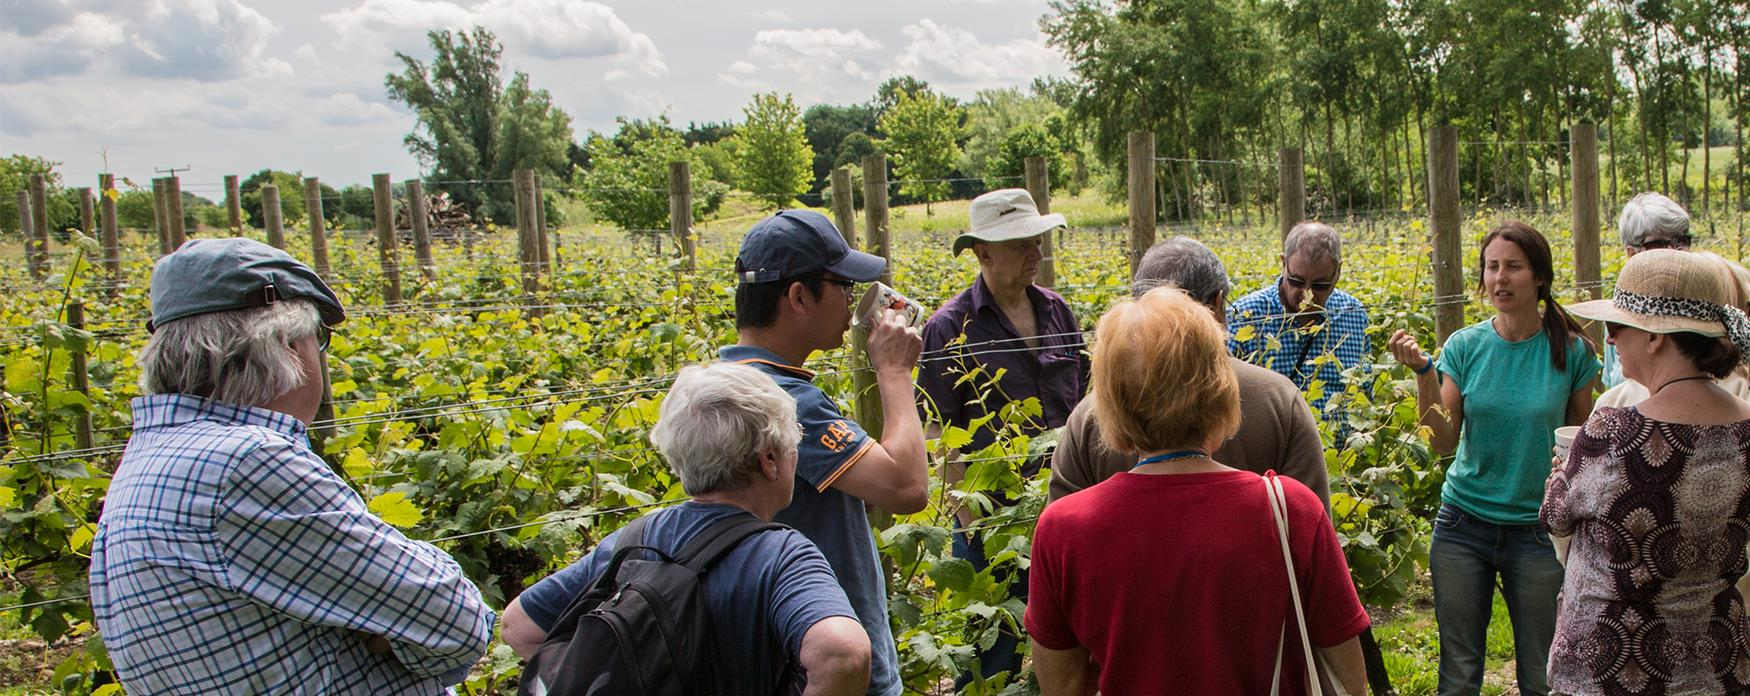 A group standing among vines at Bardfield Vineyard